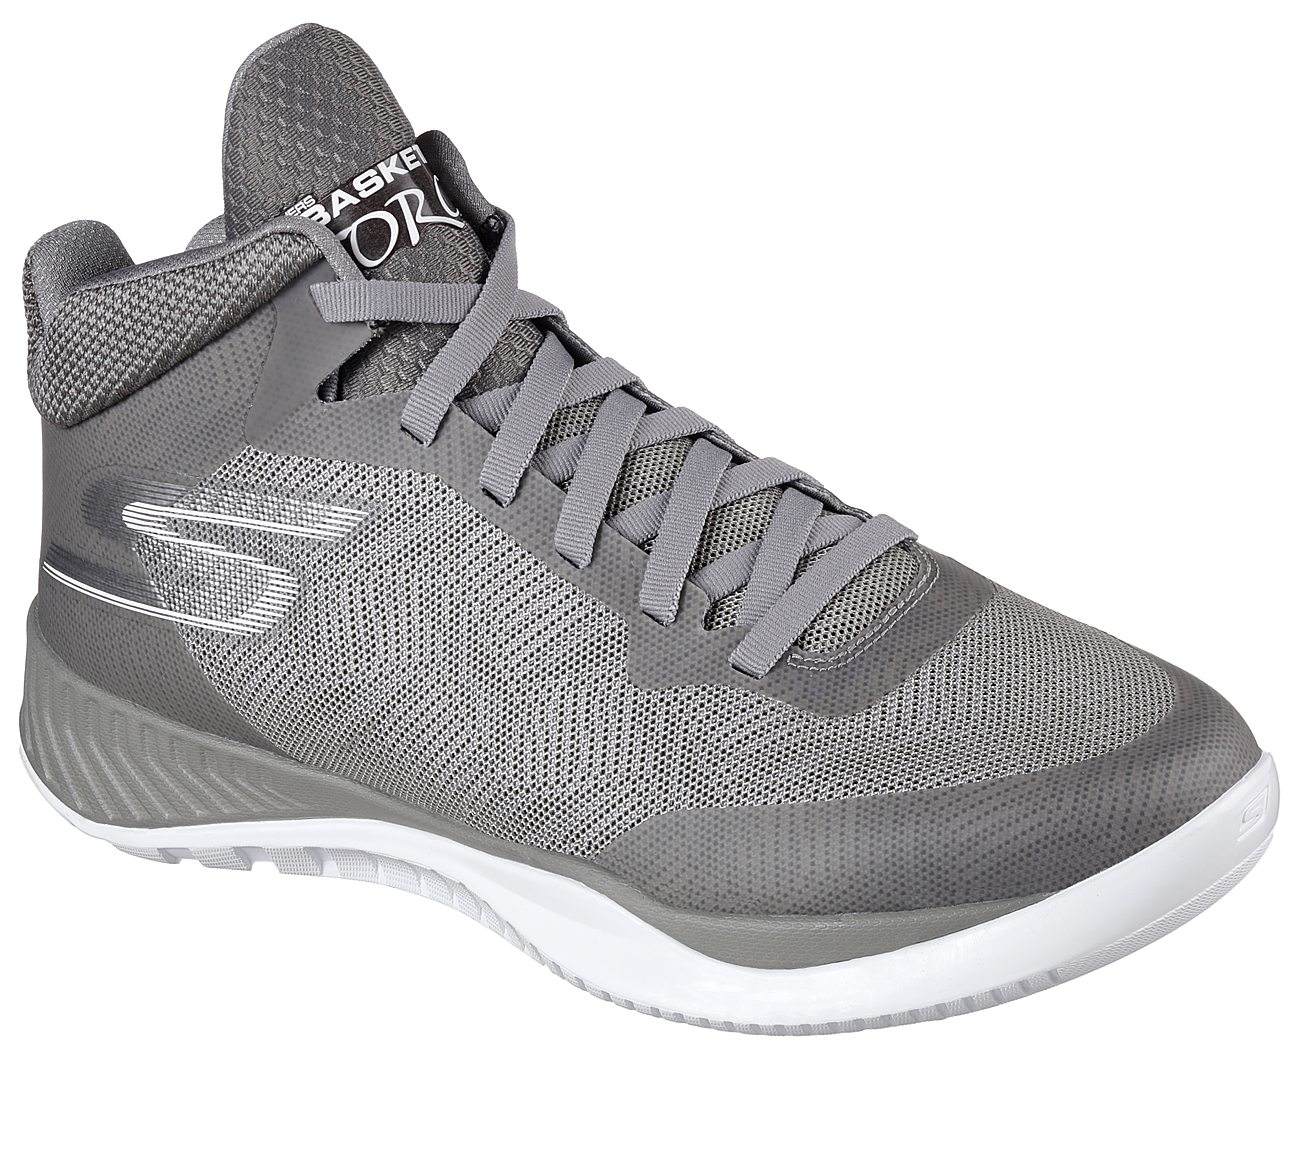 da7a94acecbb Buy SKECHERS Skechers GObasketball - Torch 2 Skechers Performance ...